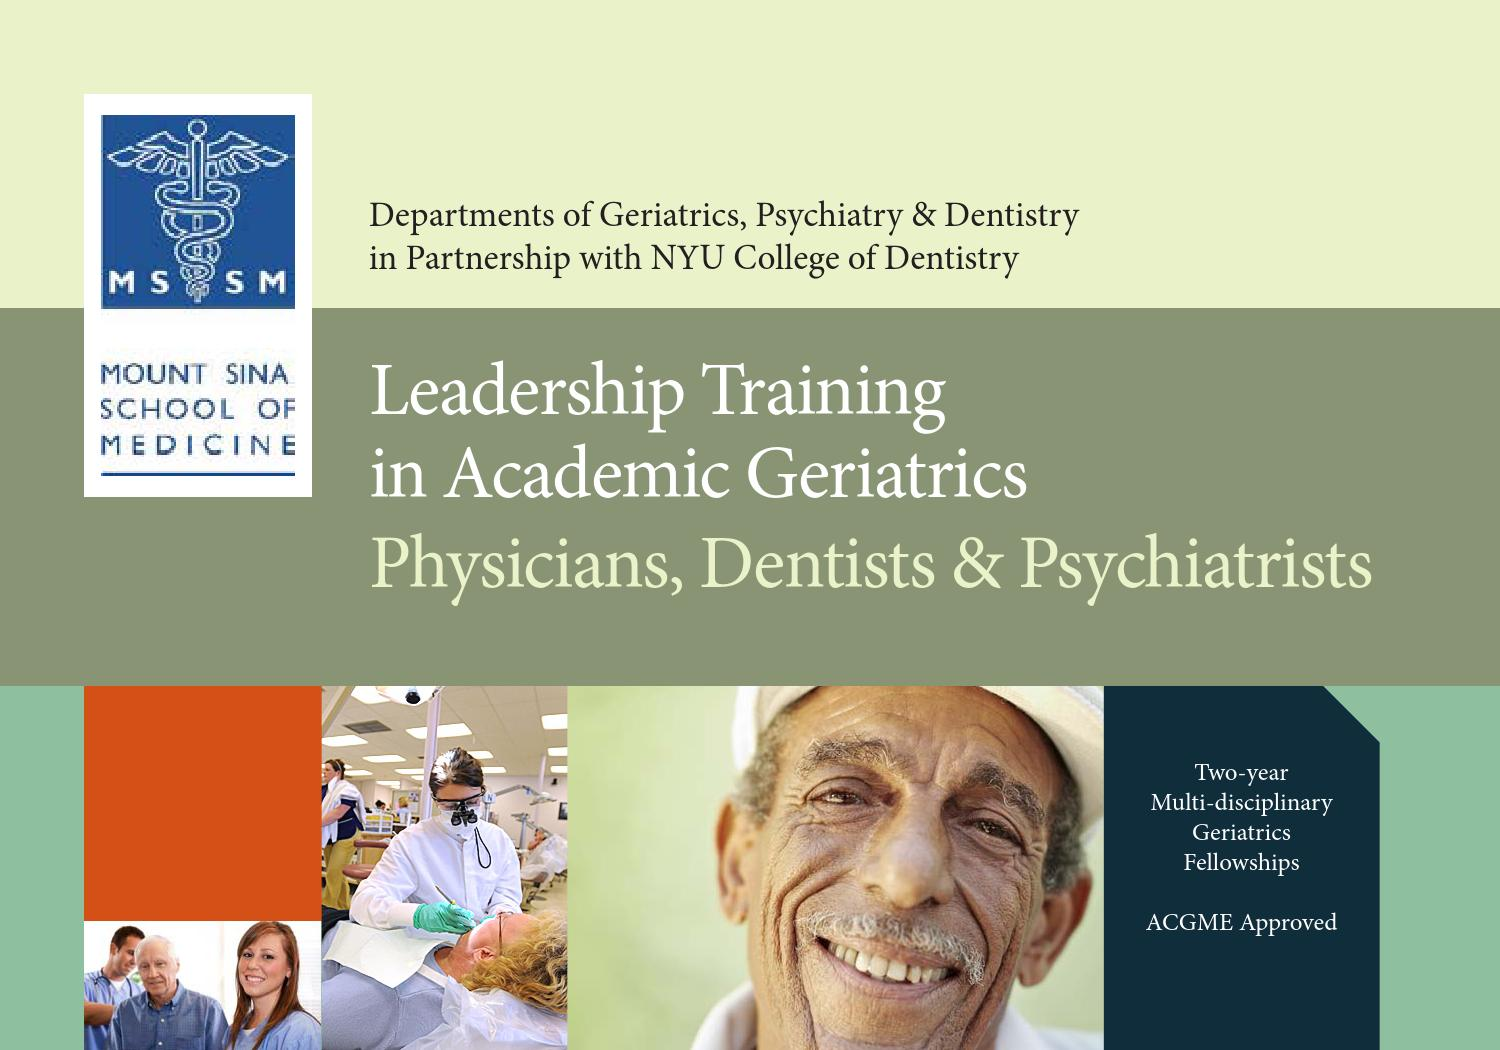 Leadership Training in Academic Geriatrics by Mount Sinai Health